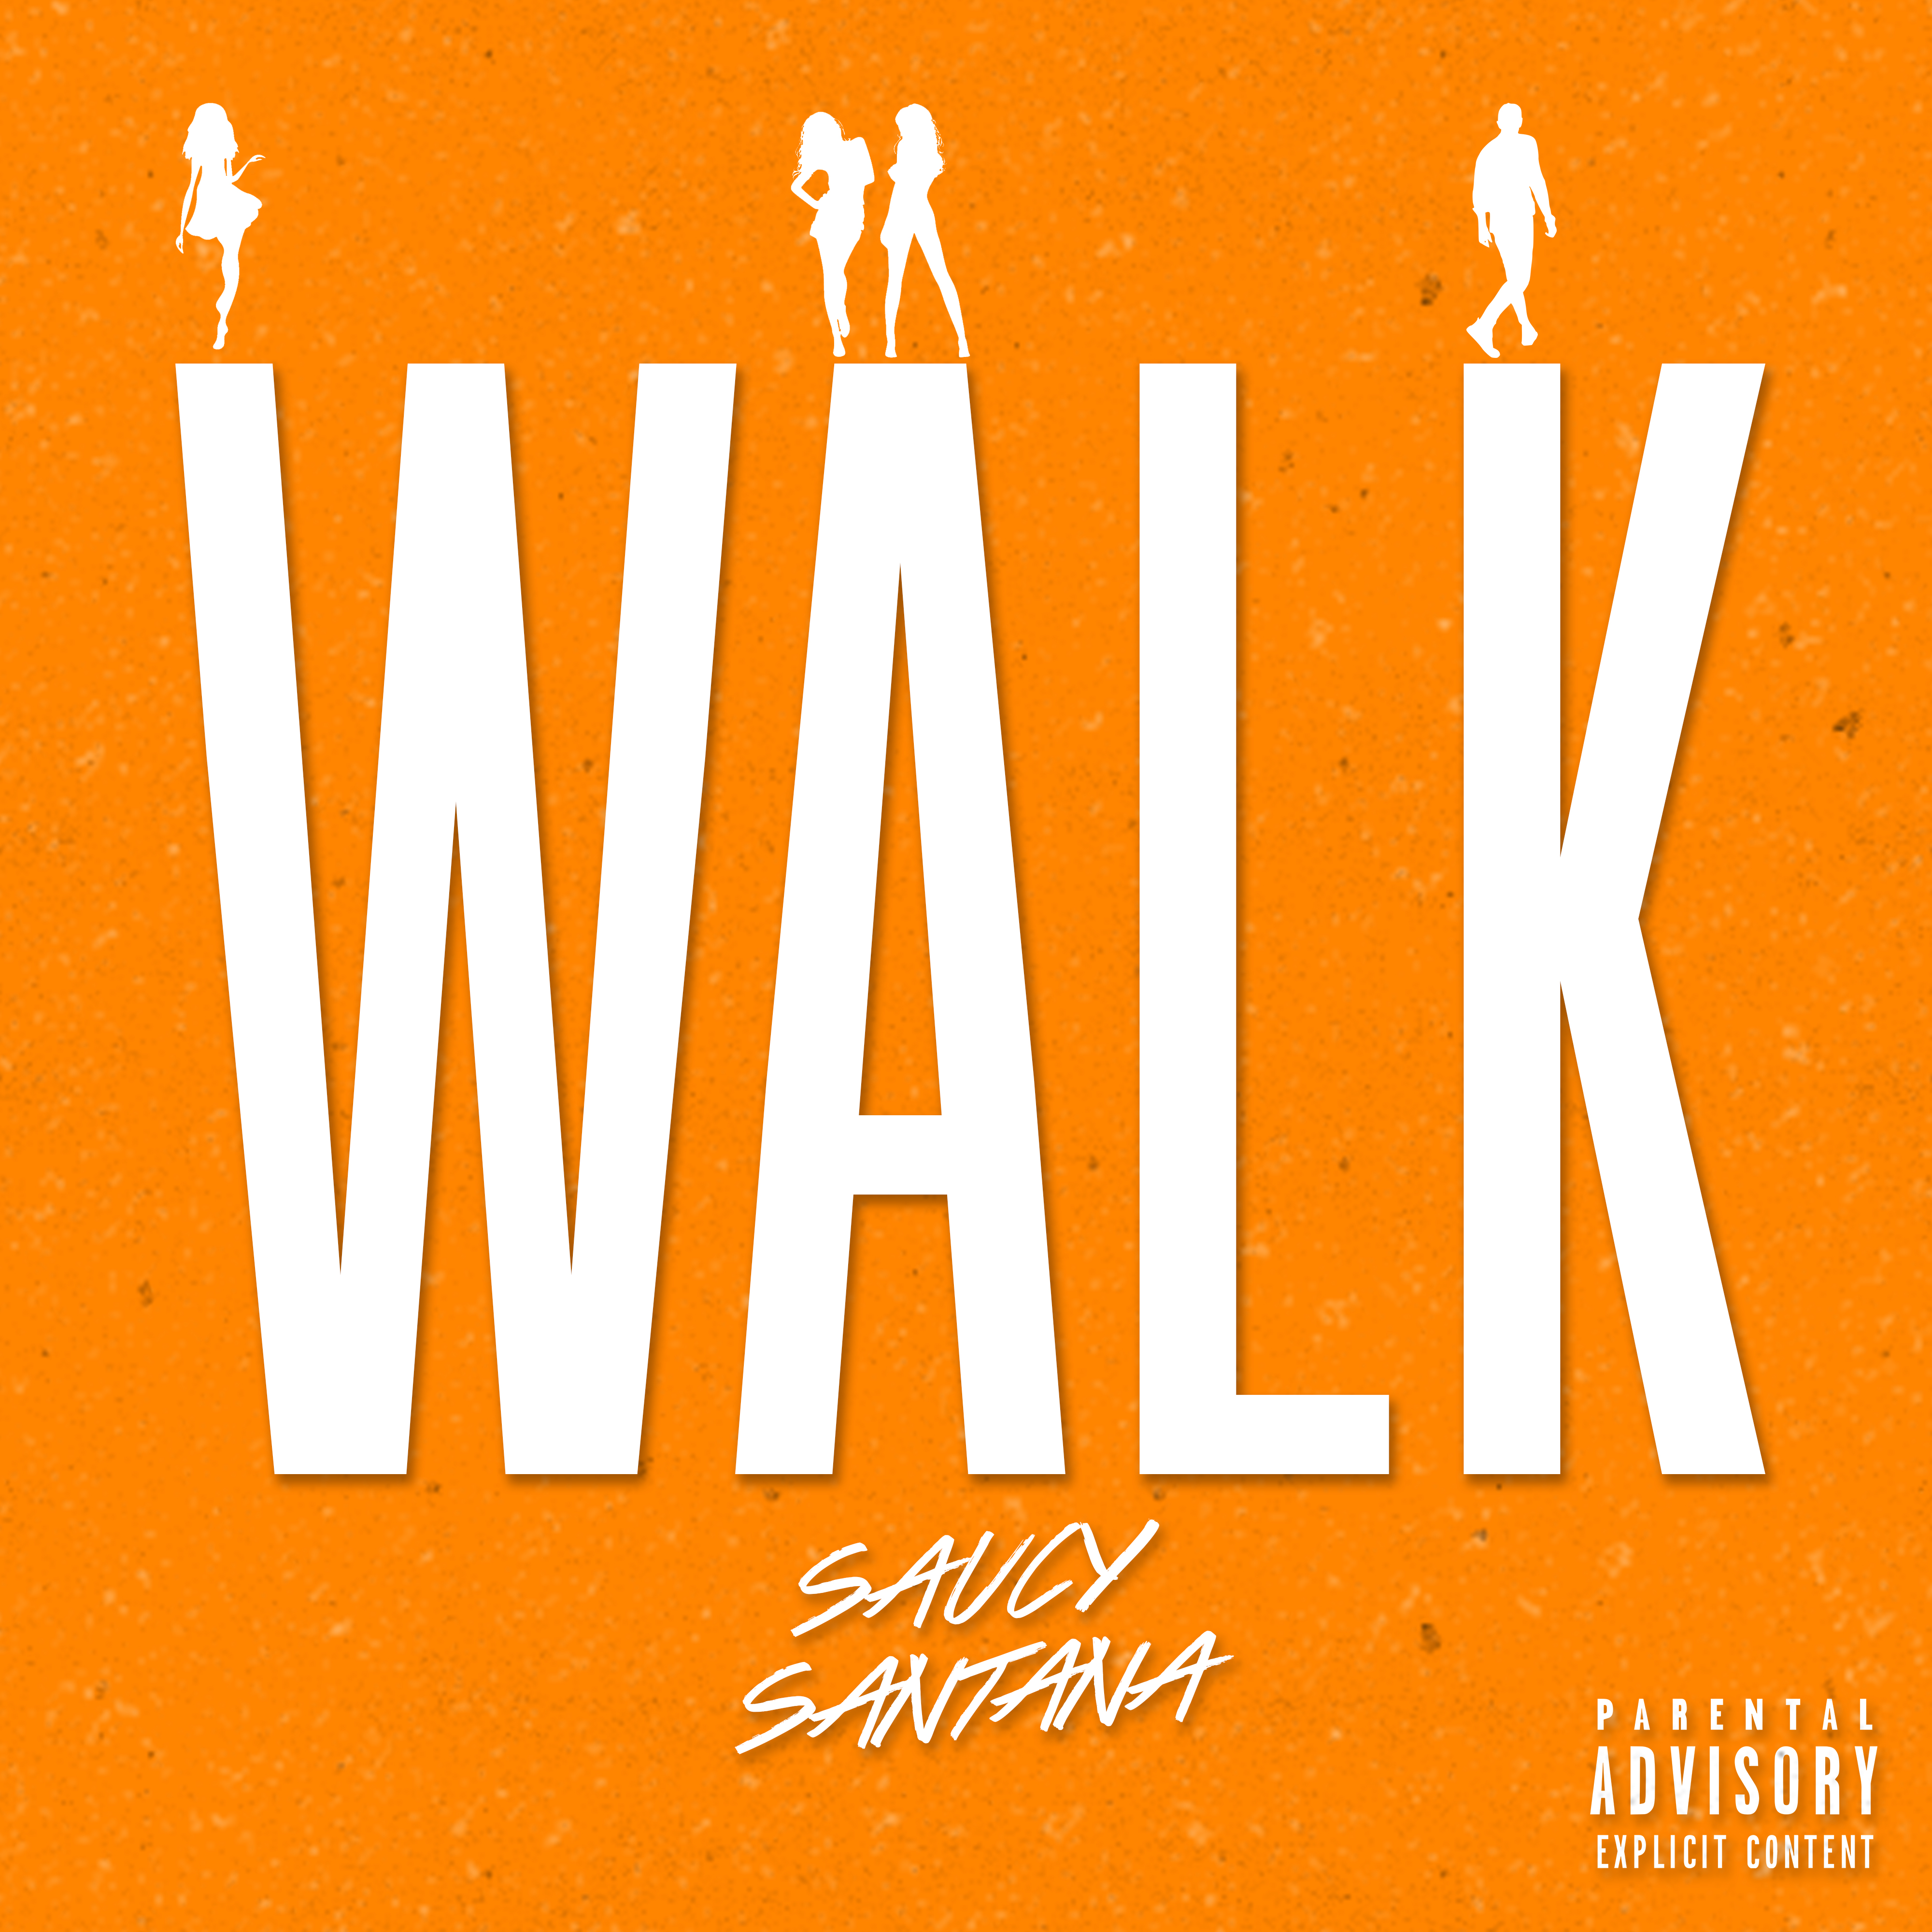 Art for Walk (Quick Hit Clean) by Saucy Santana